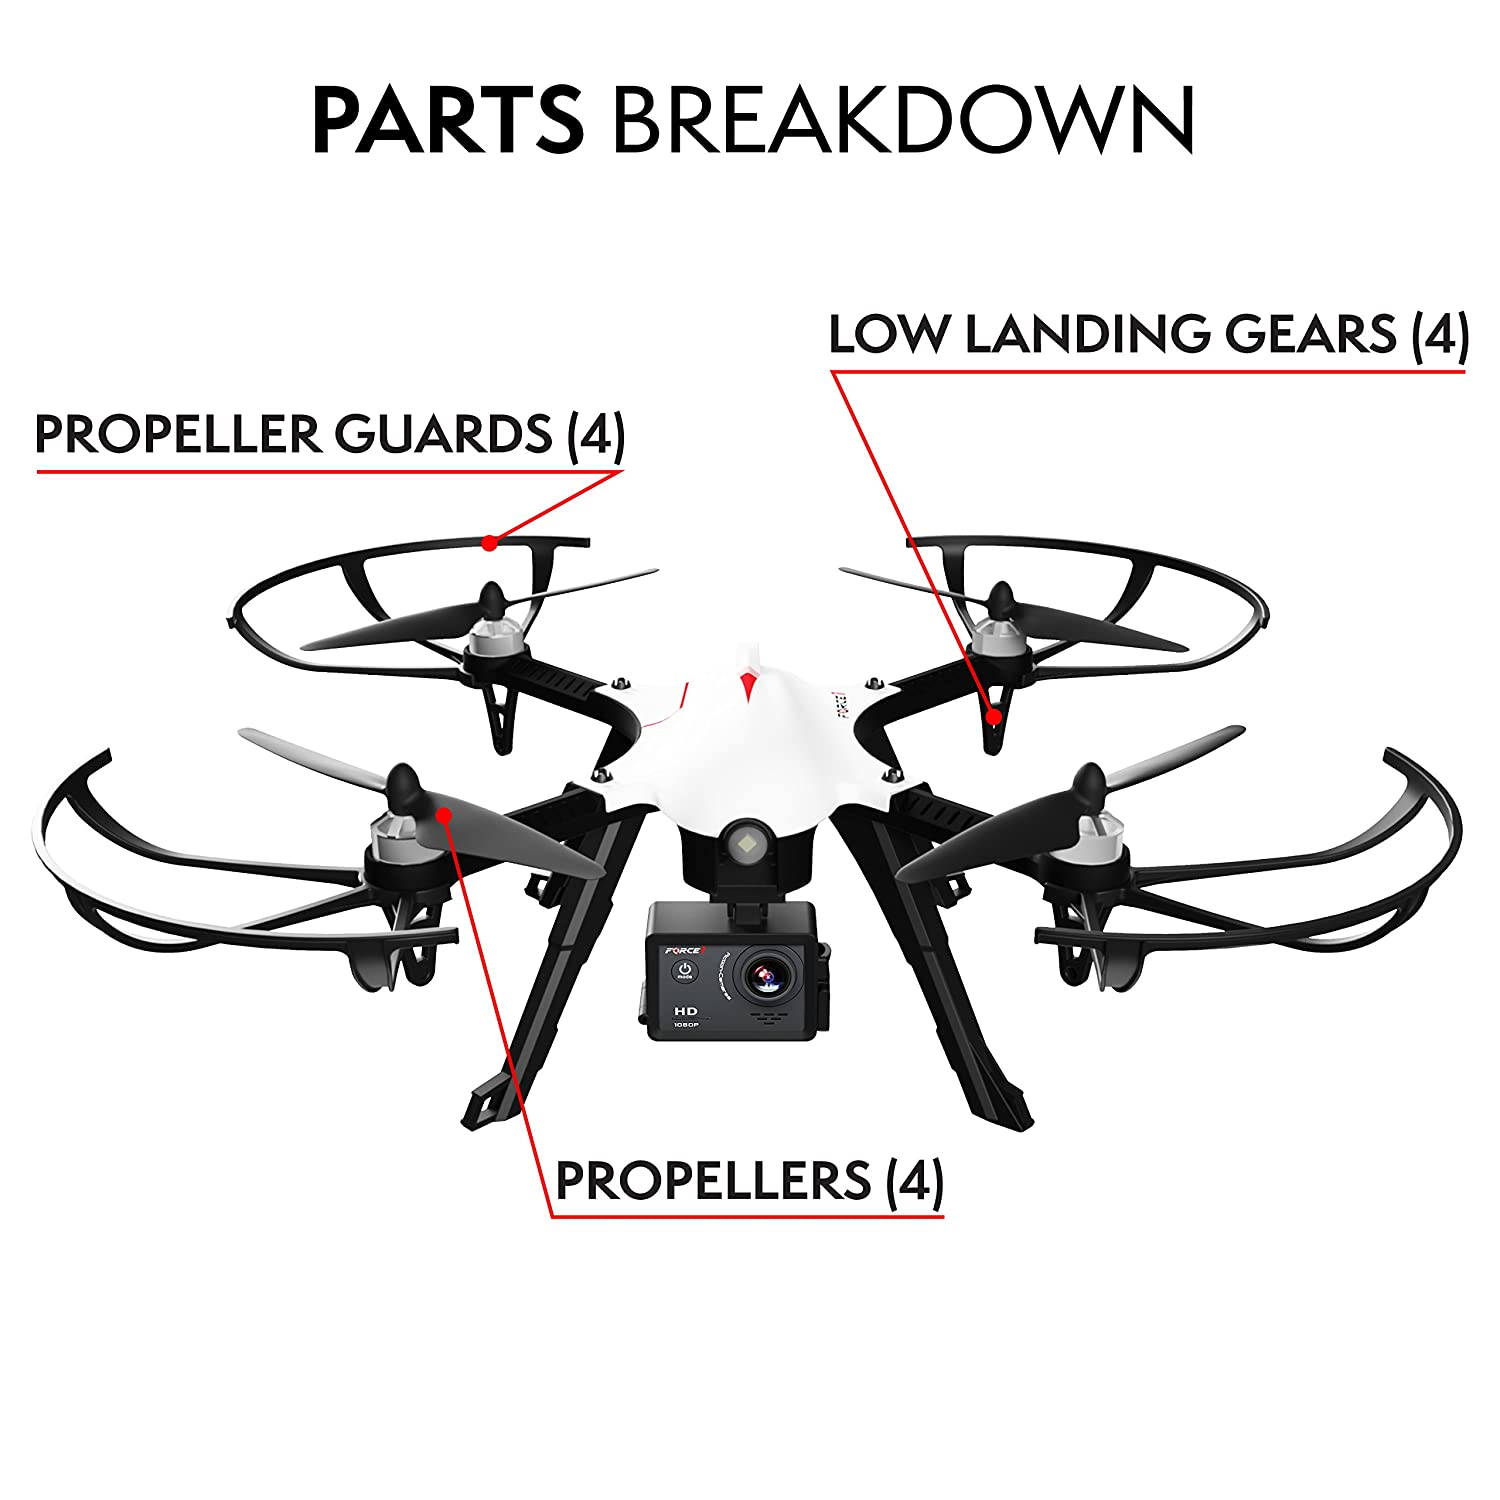 Propellers Prop Guards /& Landing Gear Spare Parts Kit Also Compatible w// MJX B3 Bugs 3 Quadcopter Force1 F100 /& F100 Ghost Drone Parts Crash Pack